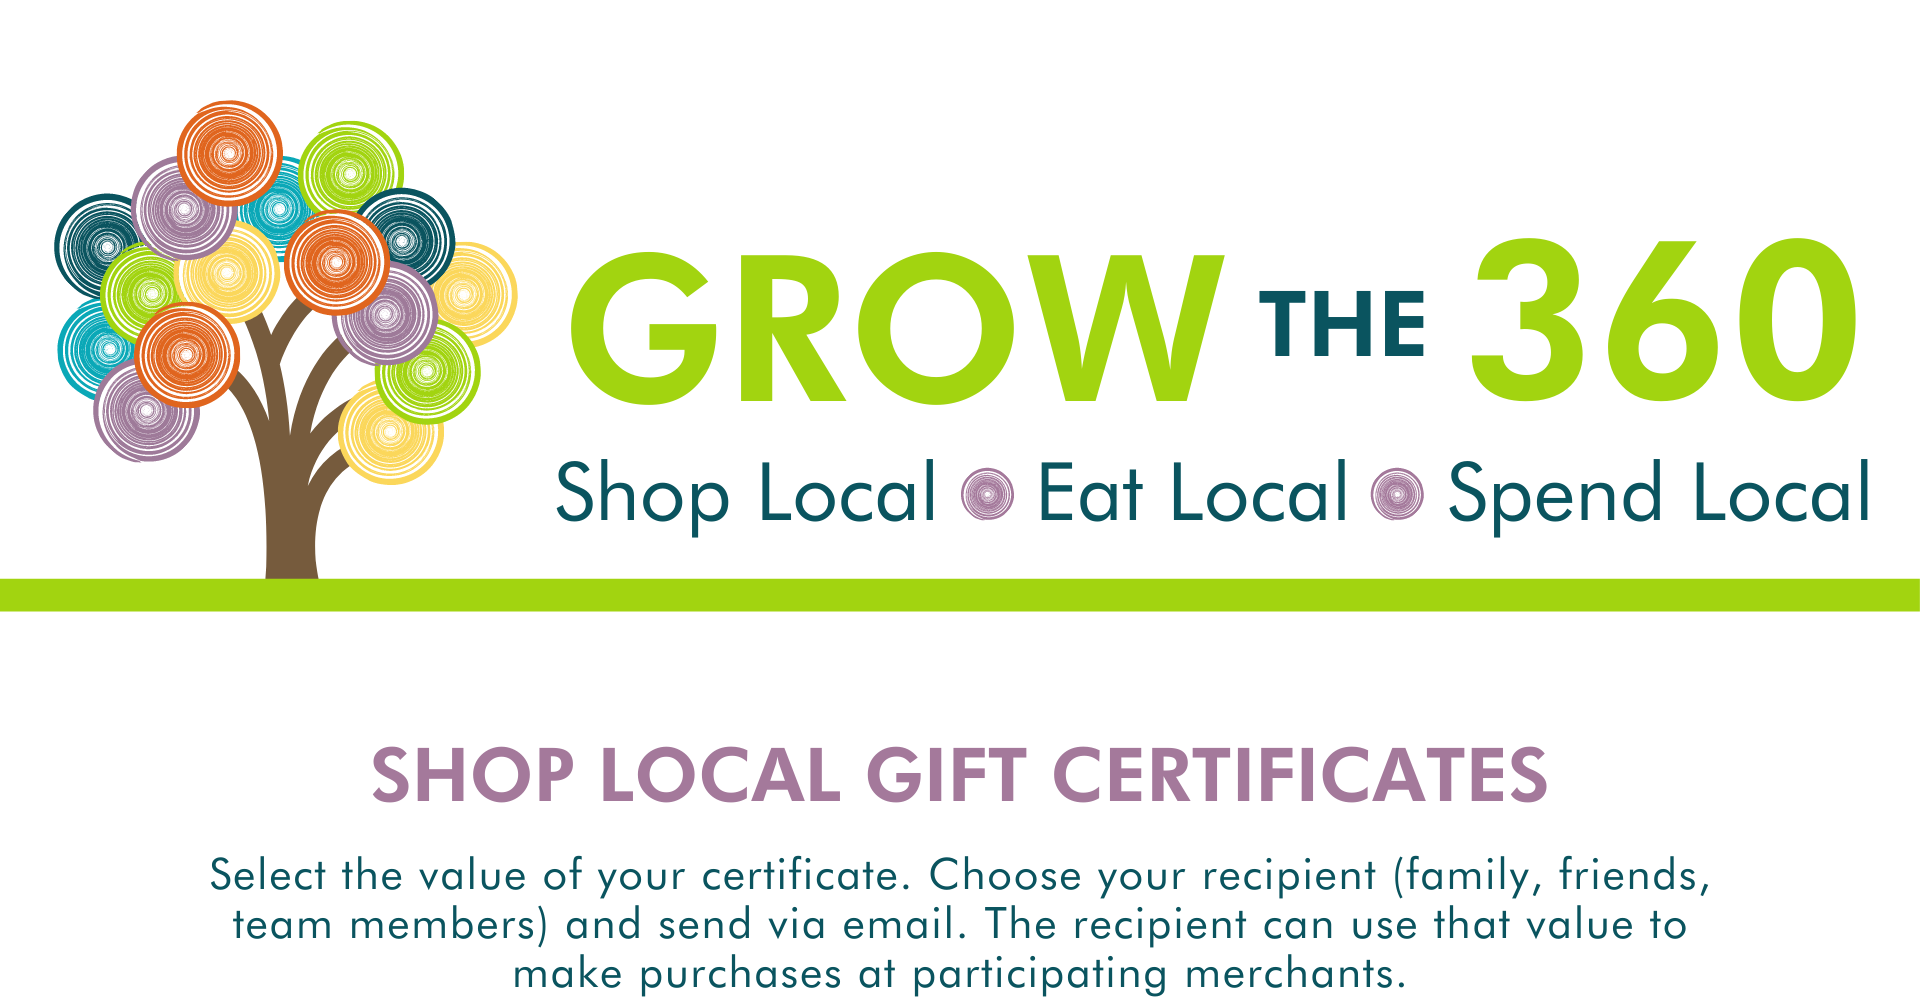 Select the value of your certificate. Choose your recipient (family, friends, team members) and send via email. The recipient can use that value to make purchases at participating merchants. grow the 360 shop local eat local spend local gift certificates